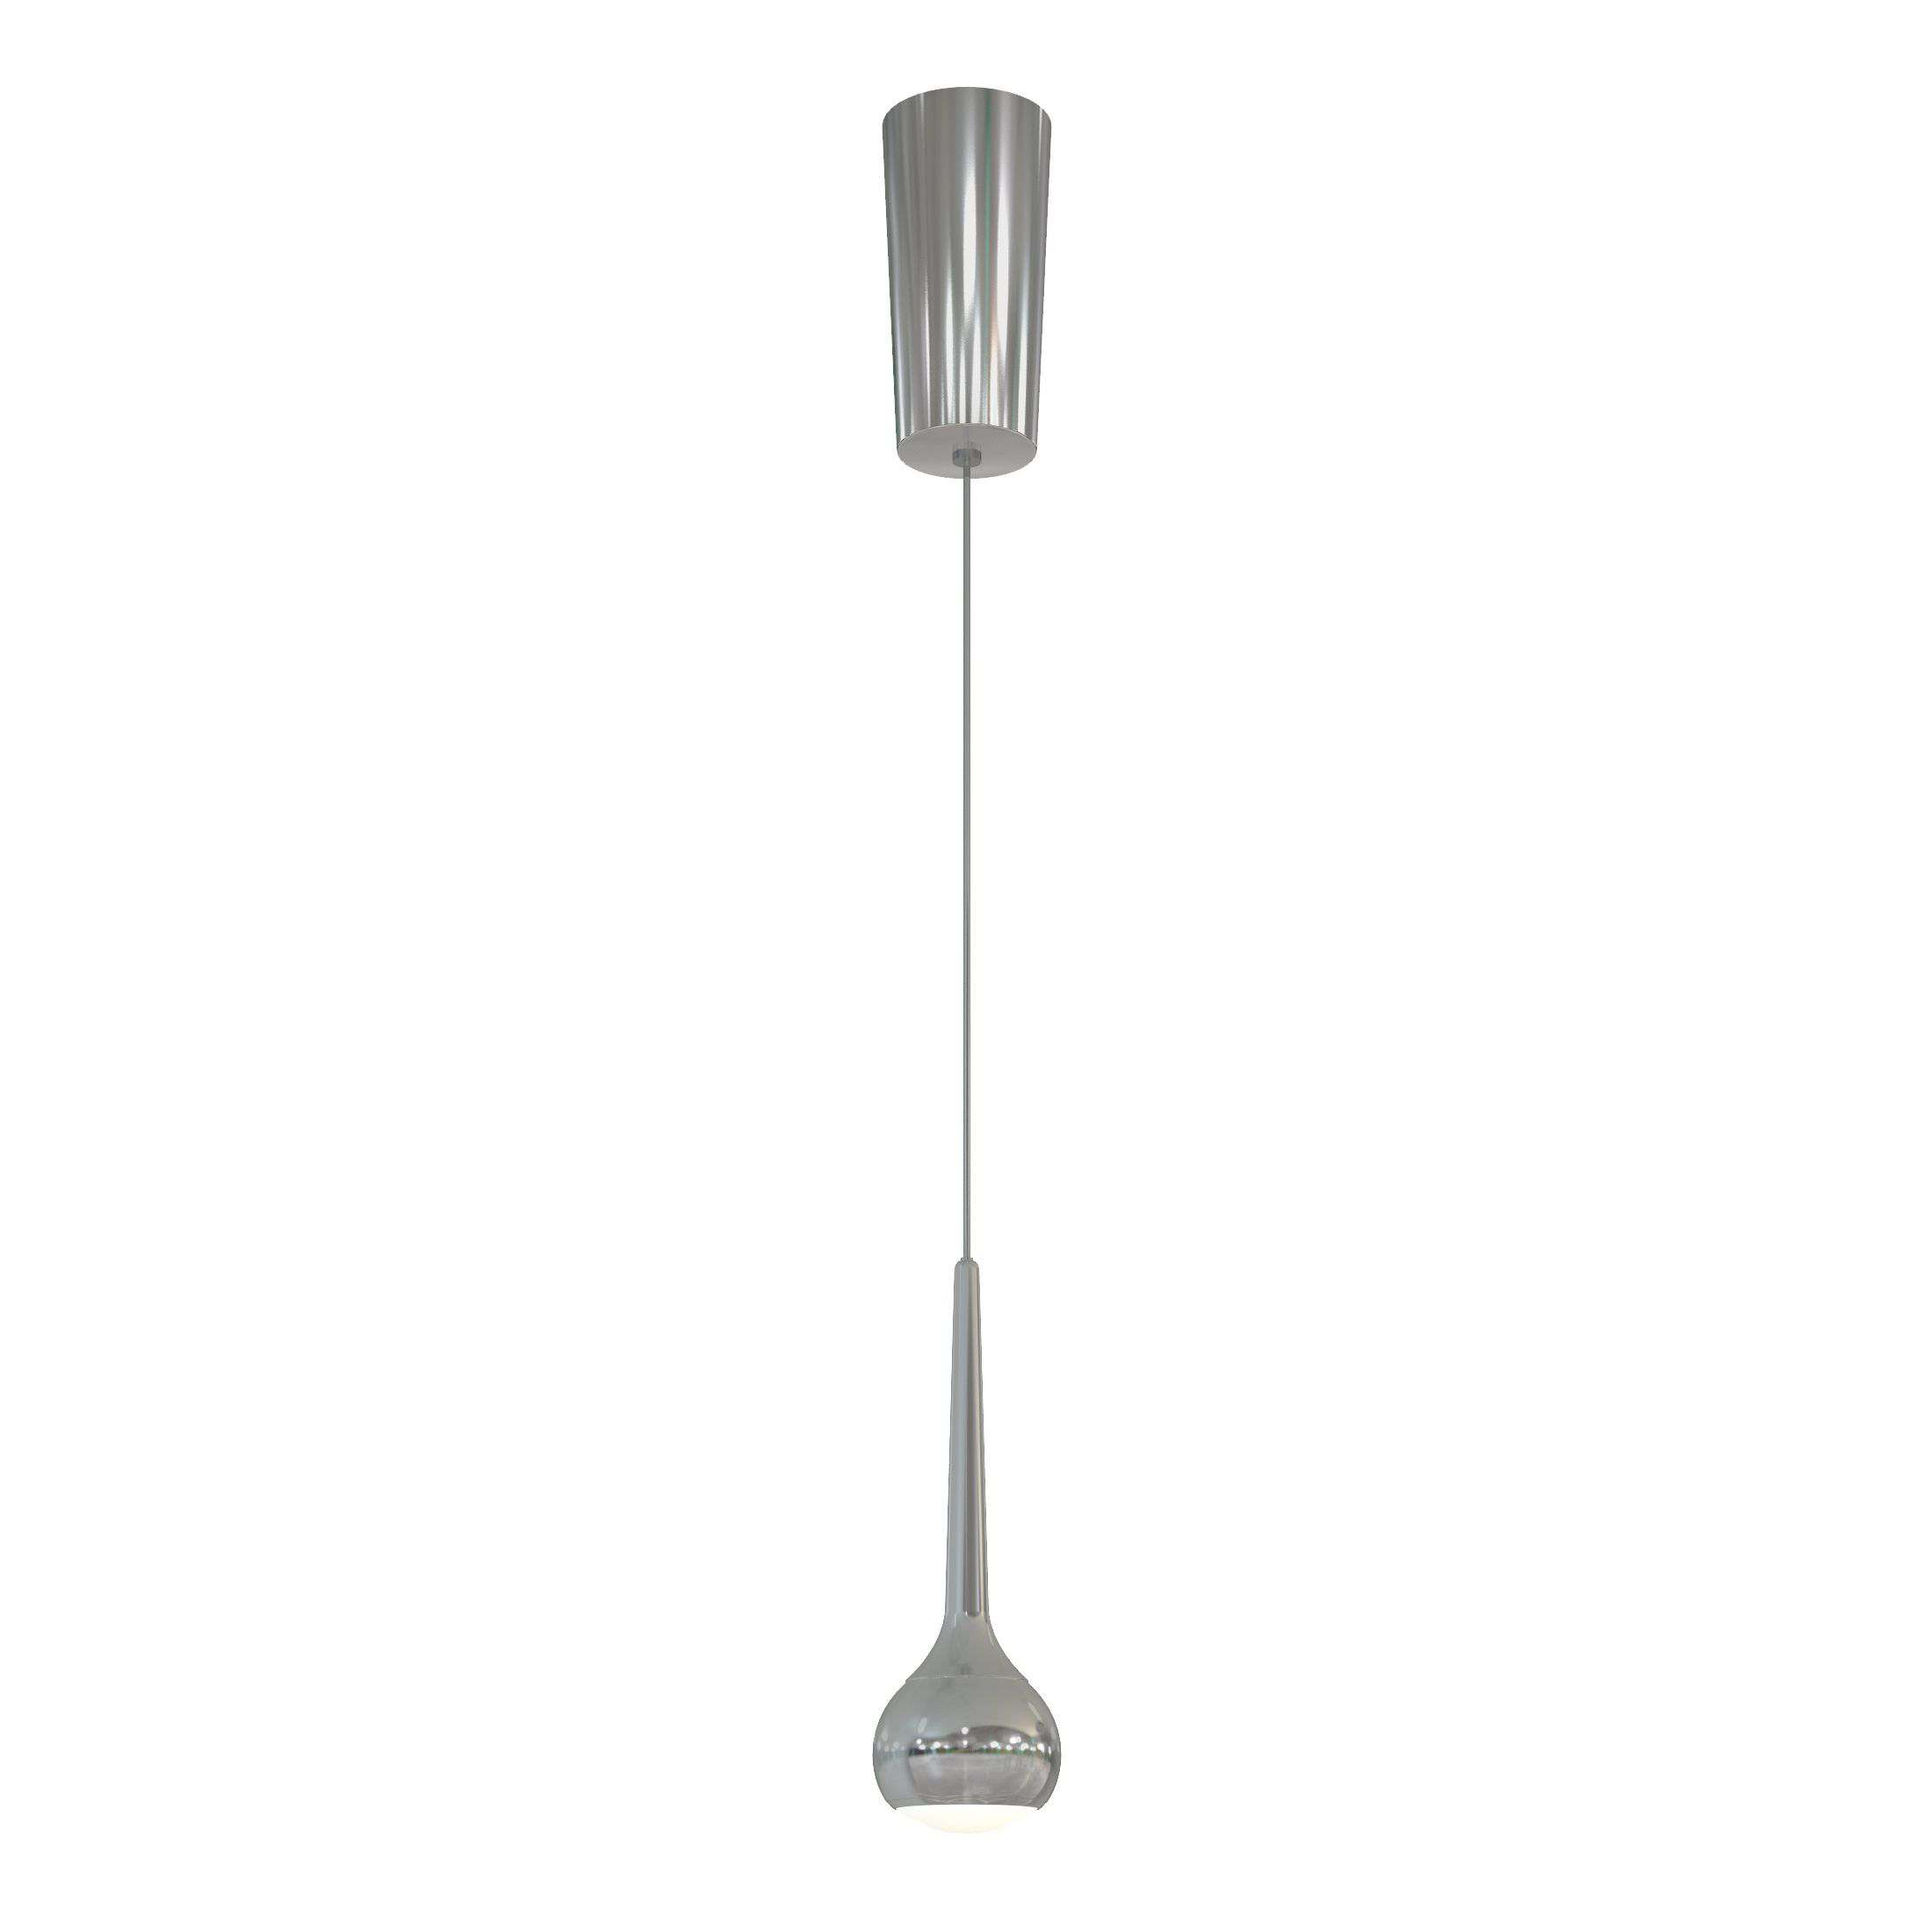 Подвесной LED-светильник Intelite Pendant Dribble 4W 3000К (I07534) Intelite DECO